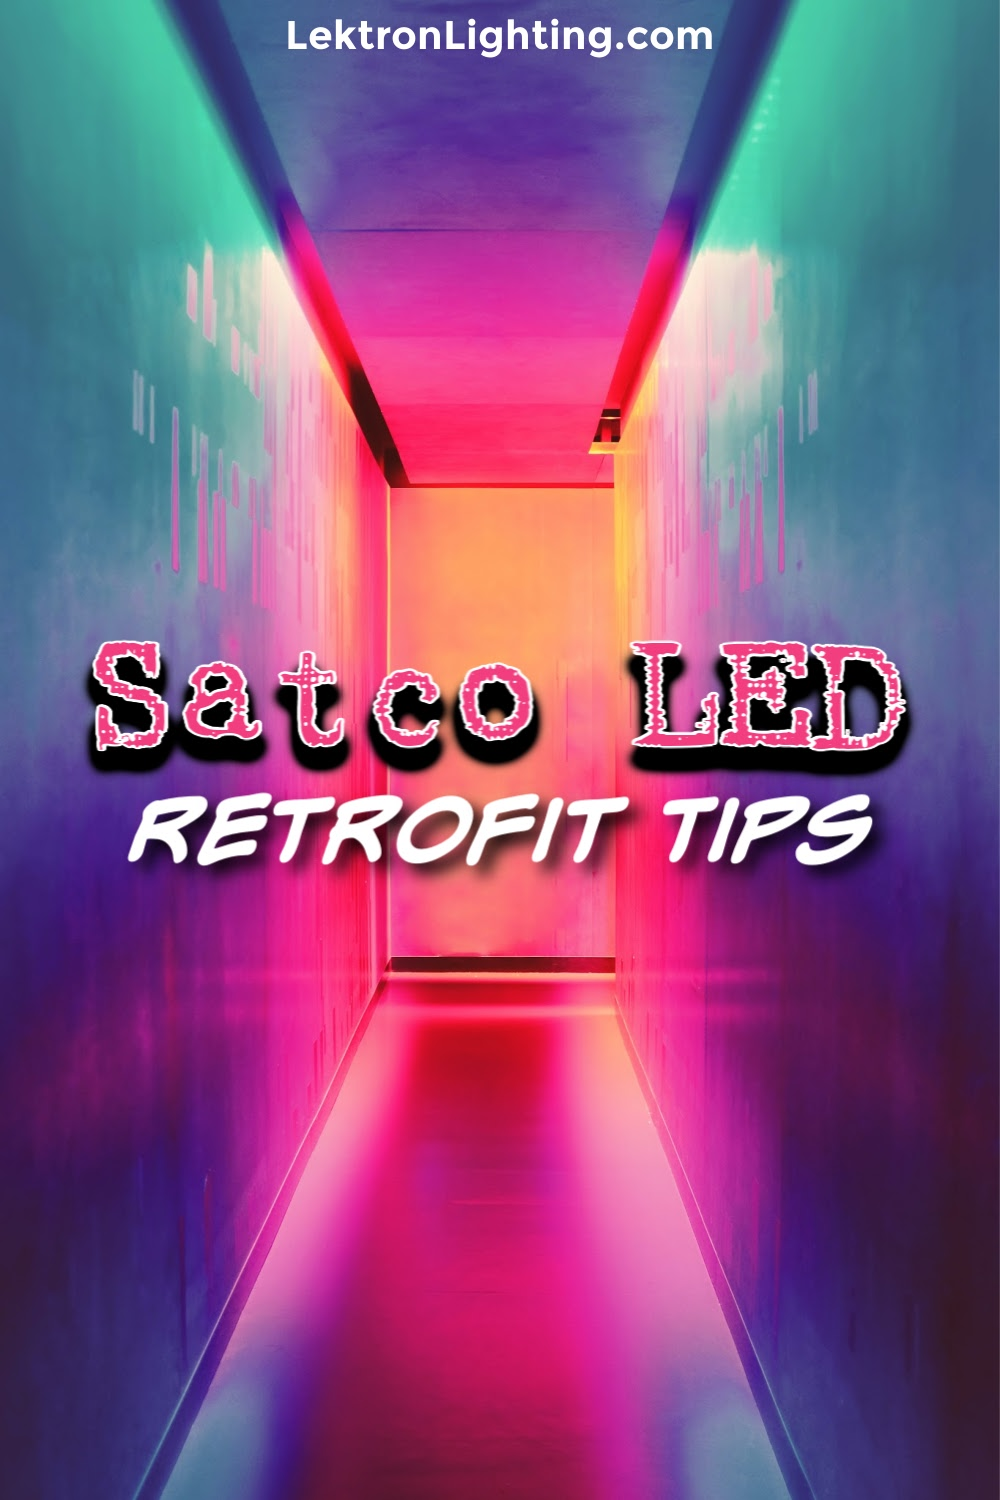 You can utilize the best Satco LED retrofit tips to save money, create amazing lighting, and reap the benefits of using LEDs.